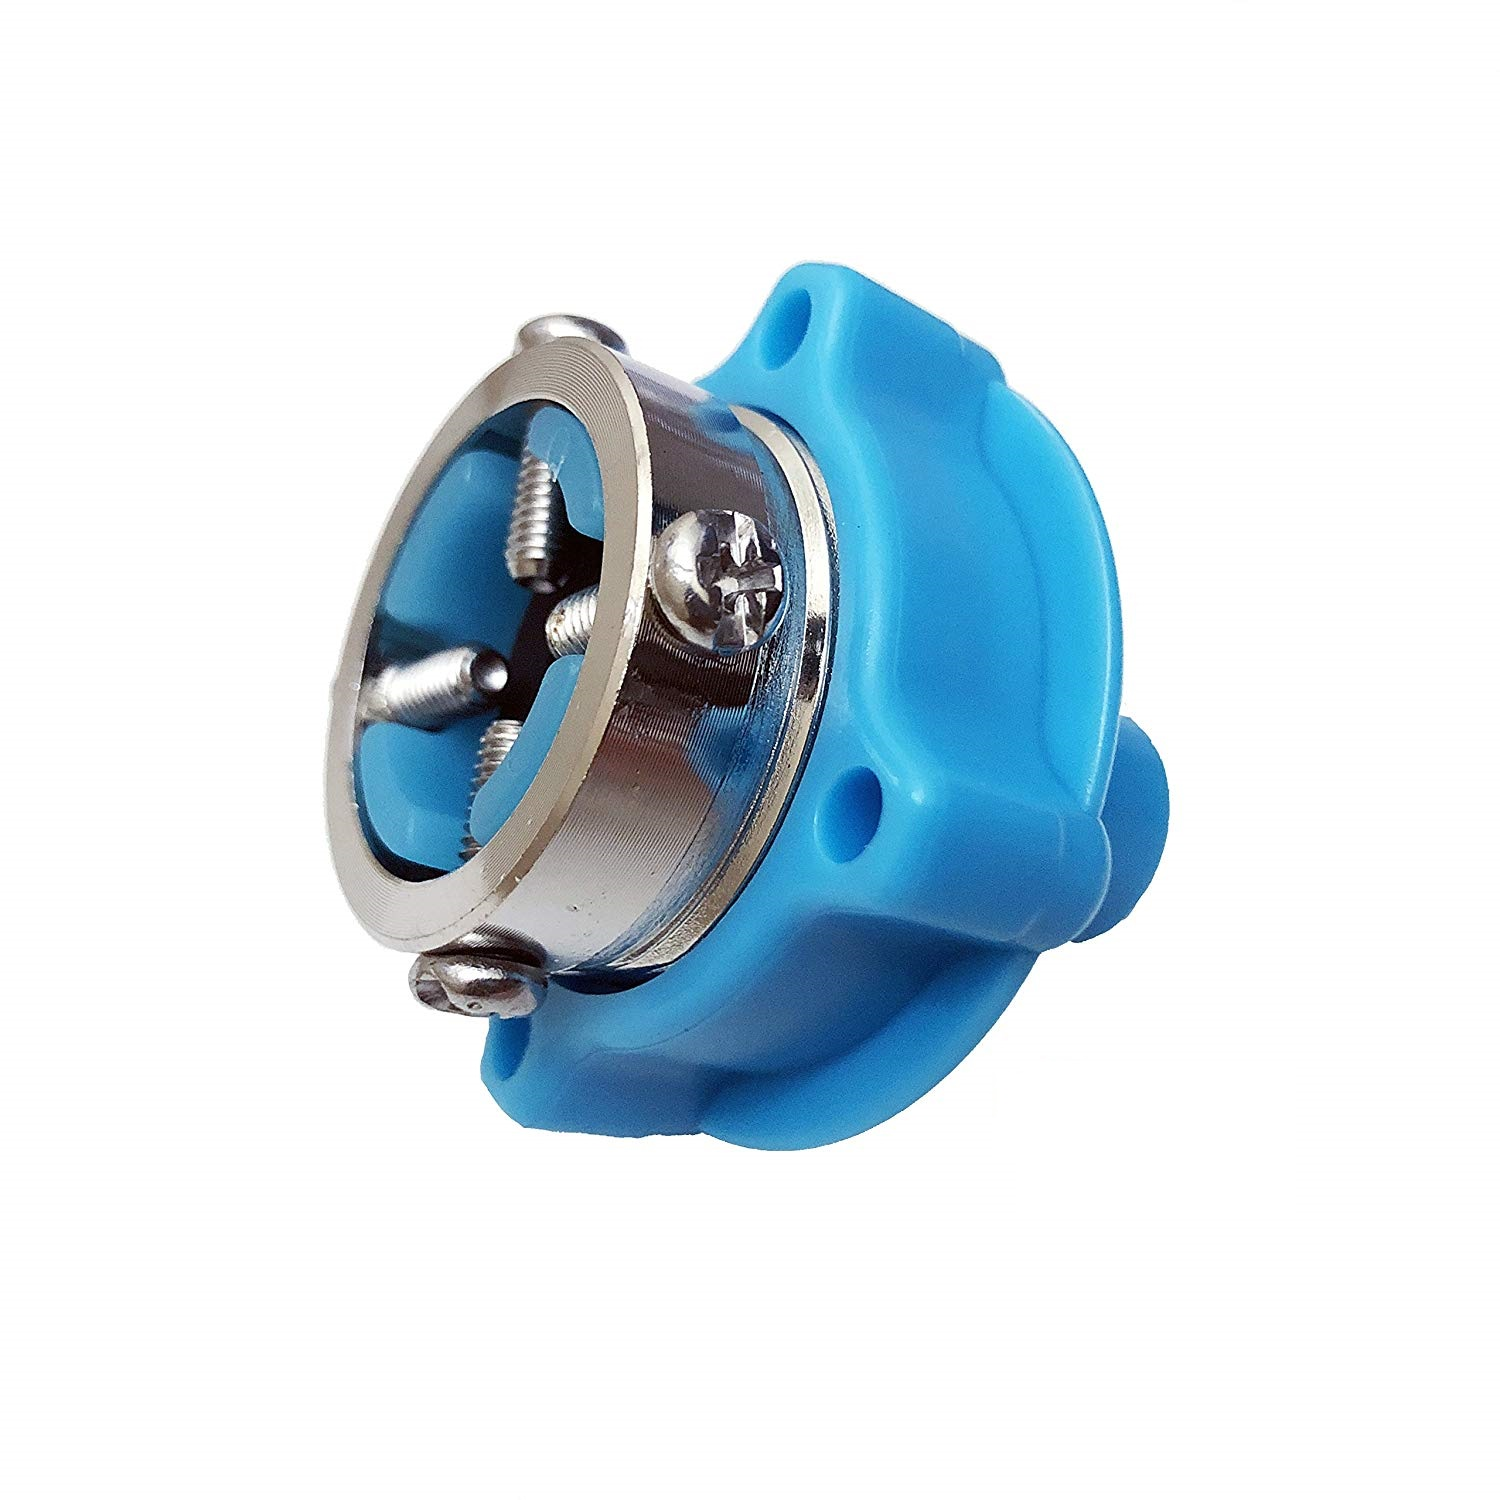 PBROS 1 Pieces Water Tap Adapter Connector for Fully Automatic Washing Machine Inlet Hose Pipe Tube  Blue